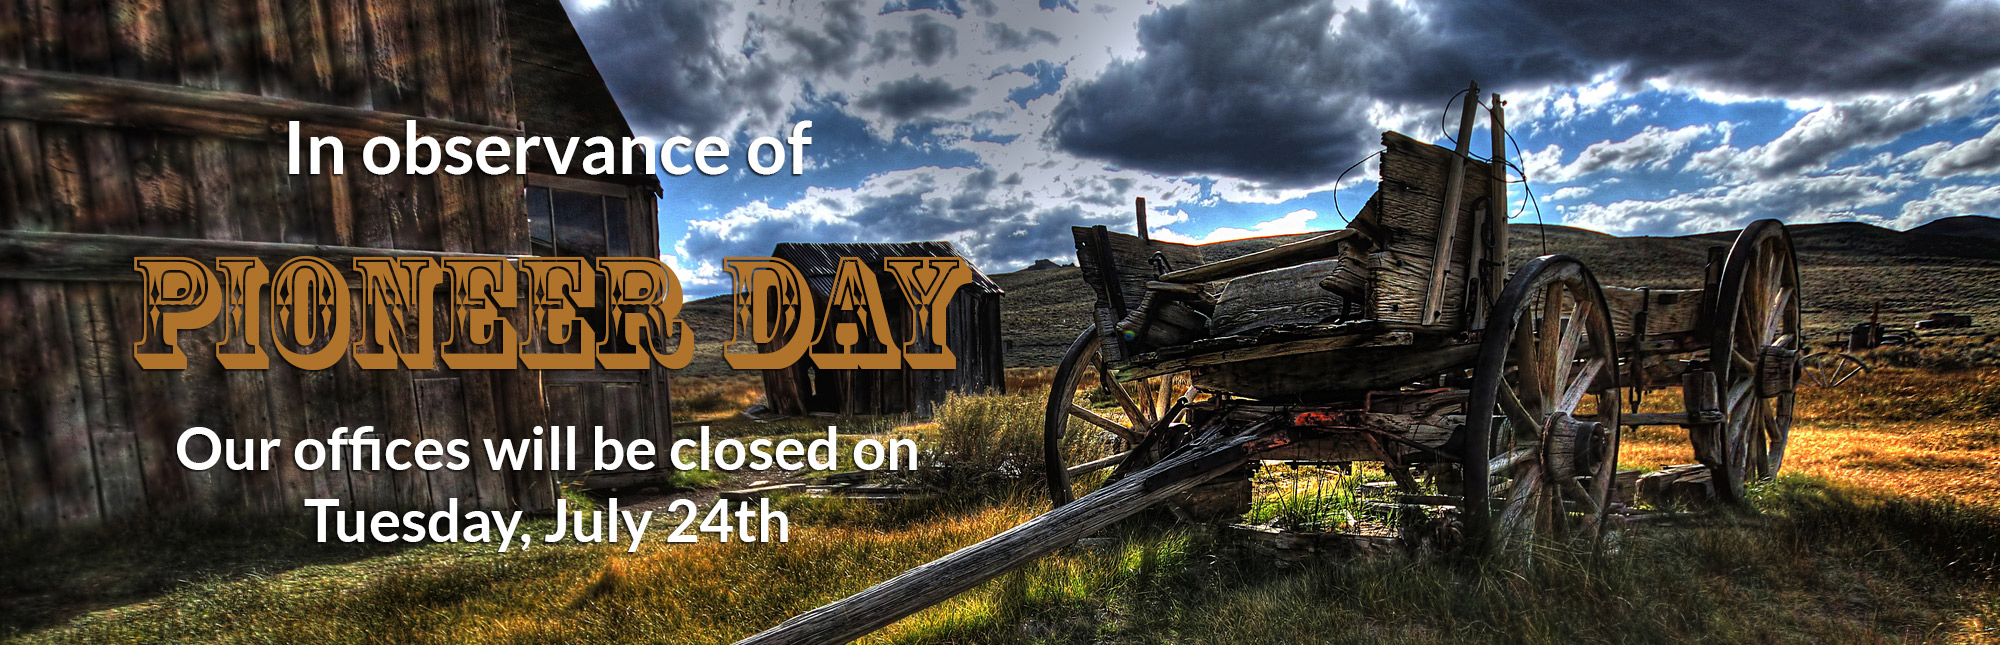 Pioneer Day Closing